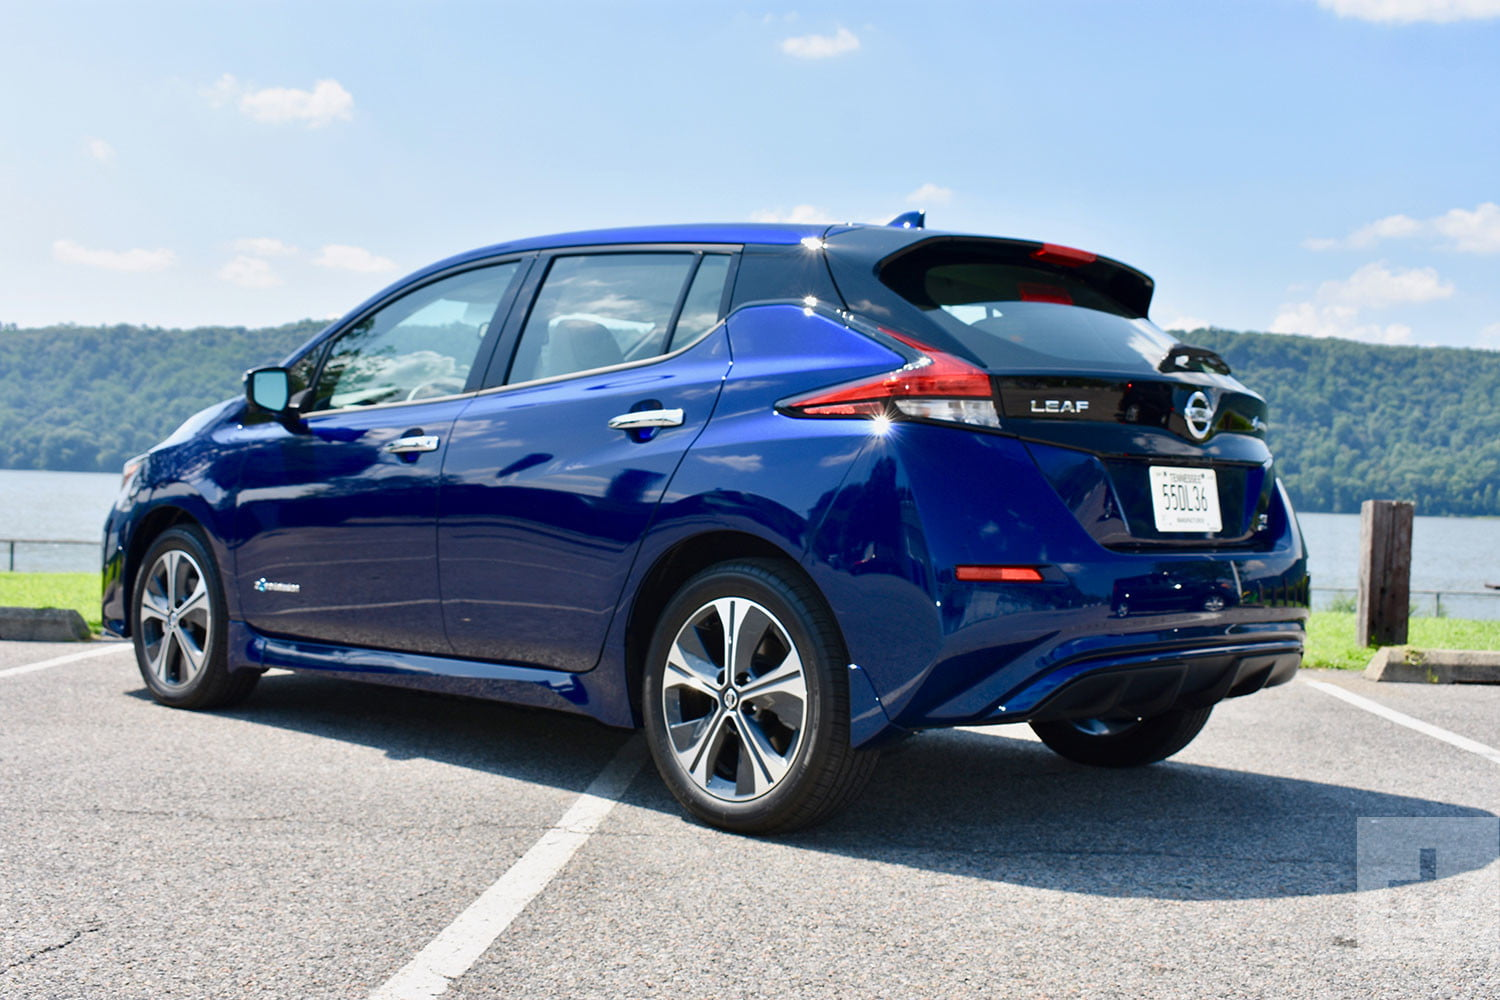 2019 Nissan Leaf Plus Review Digital Trends